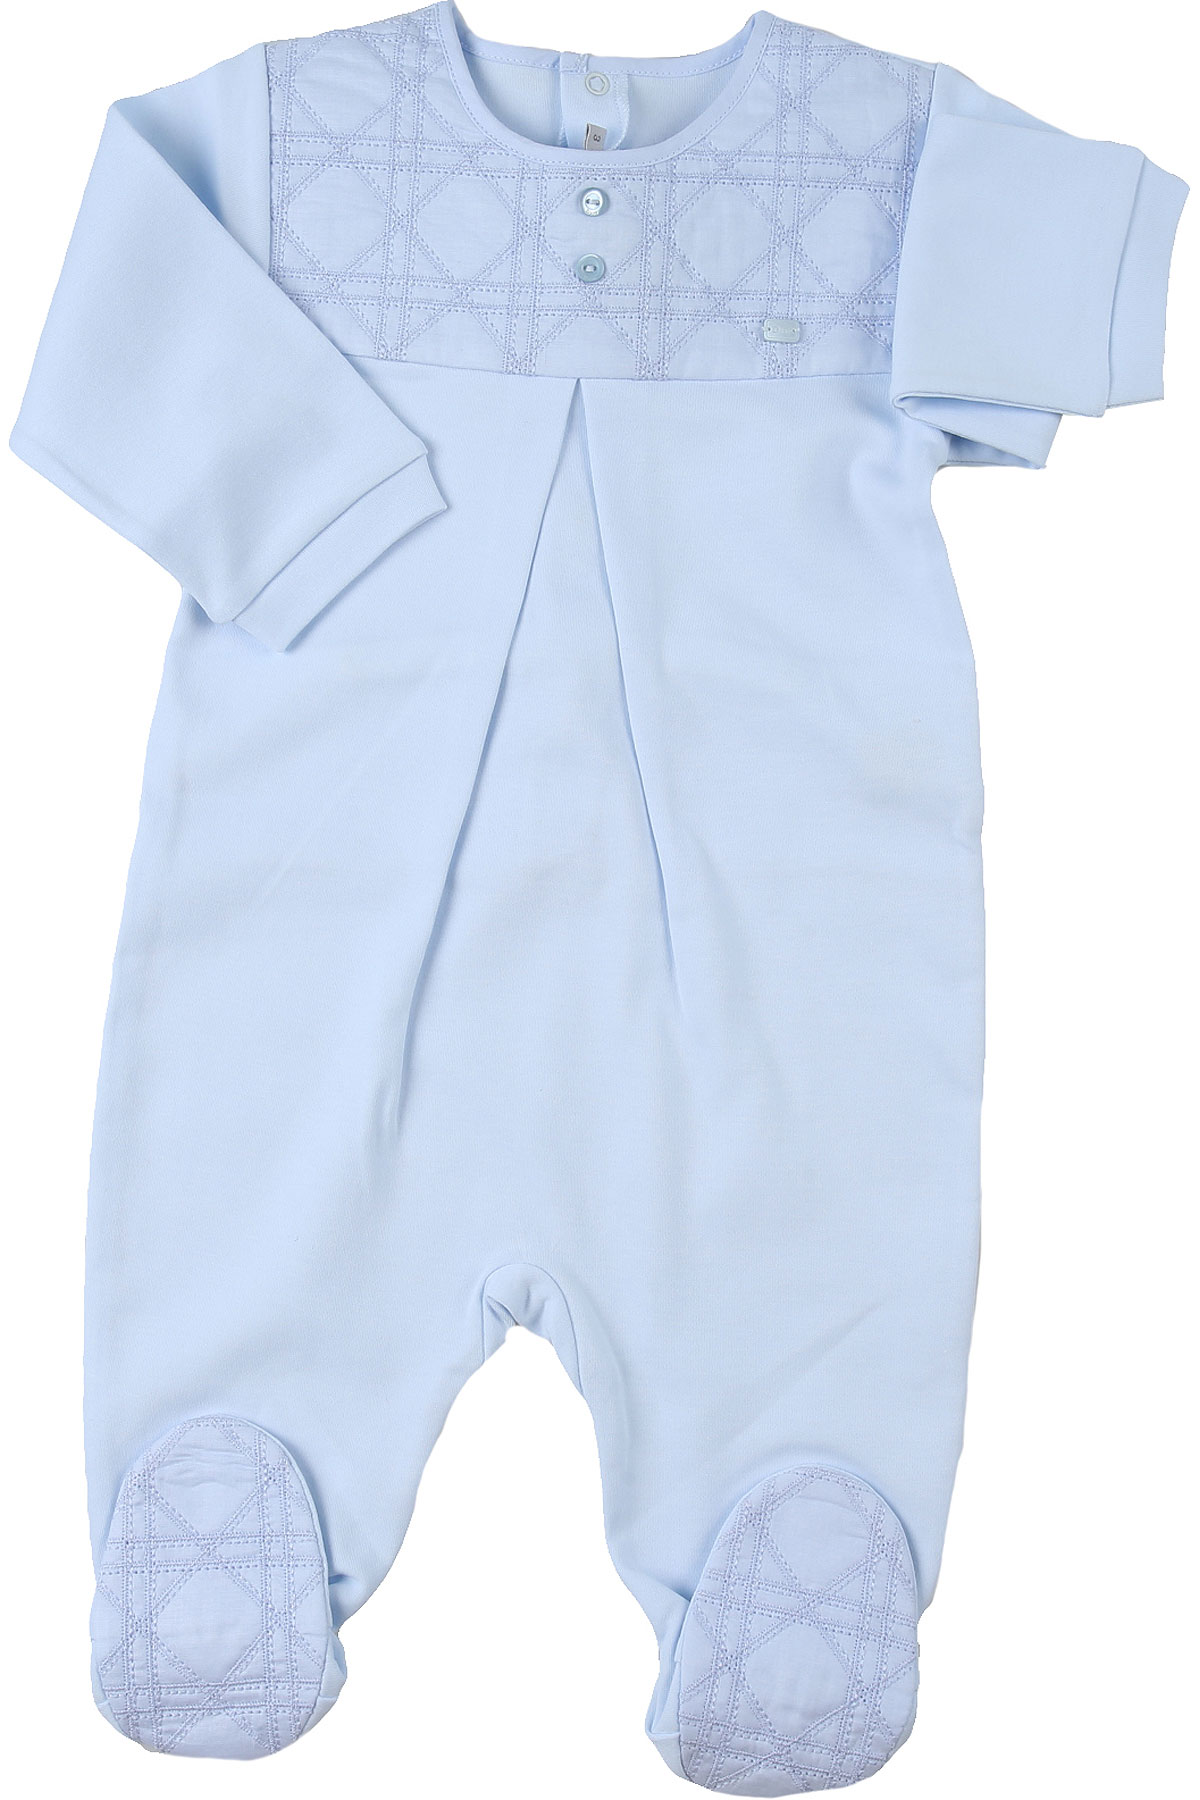 Baby Dior Baby Bodysuits & Onesies for Boys On Sale, Skyblue, Cotton, 2019, 1M 3M 6M